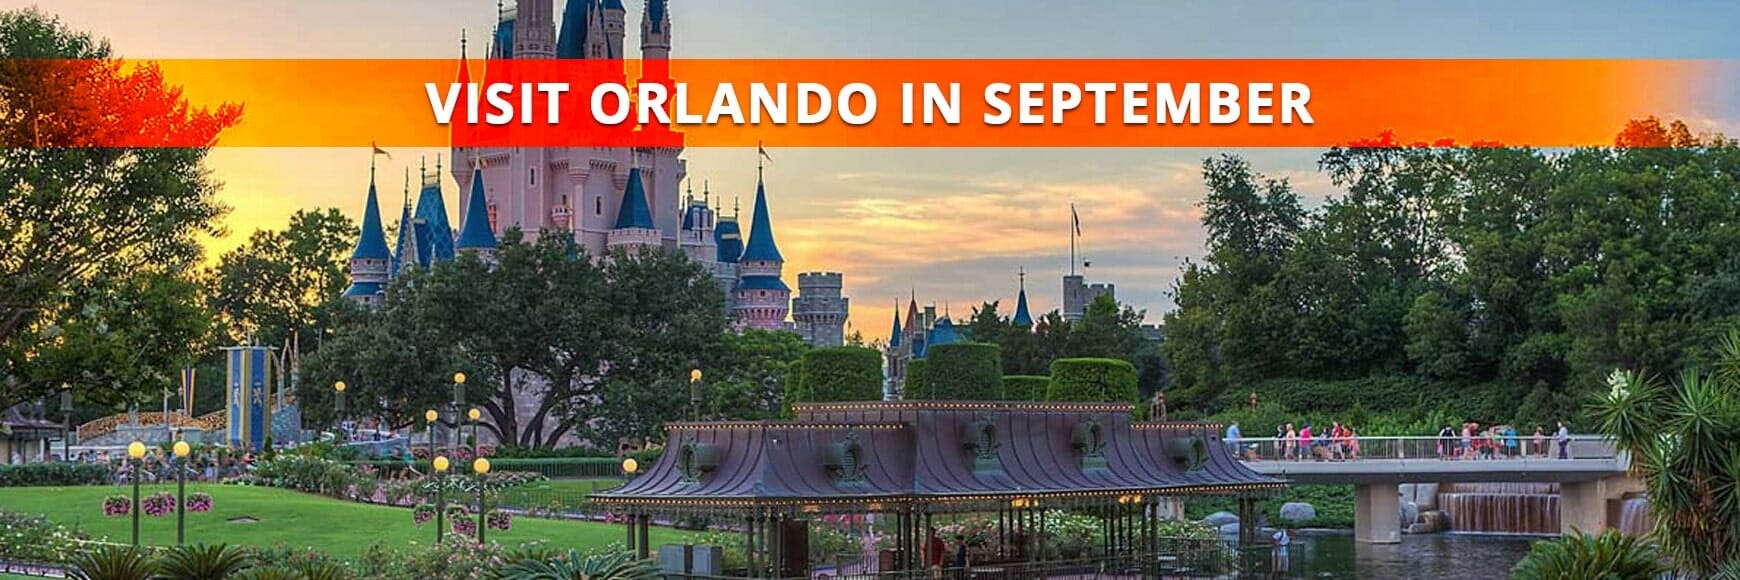 Visit Orlando in September - Orlando vacation